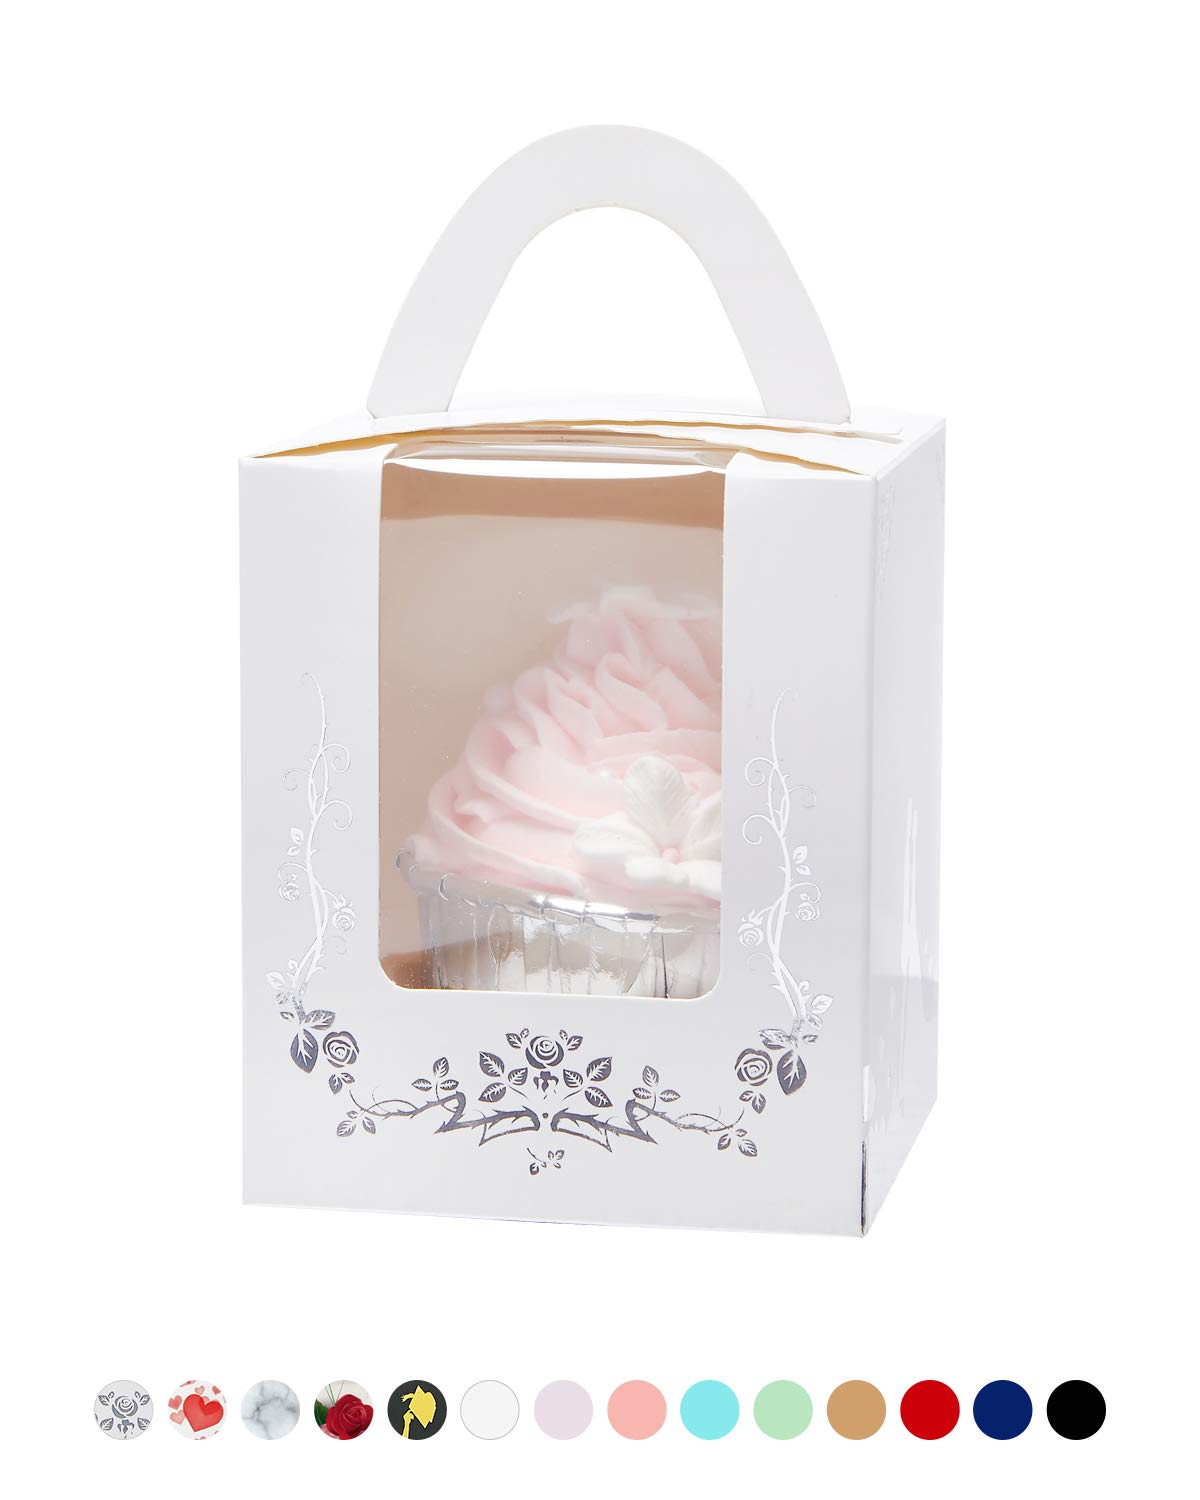 Yotruth Bride and Bridegroom Wedding Cupcake Boxes with Cake White and Silver Stamping for Wedding Favors 50 Sets (Choice Series) by yotruth